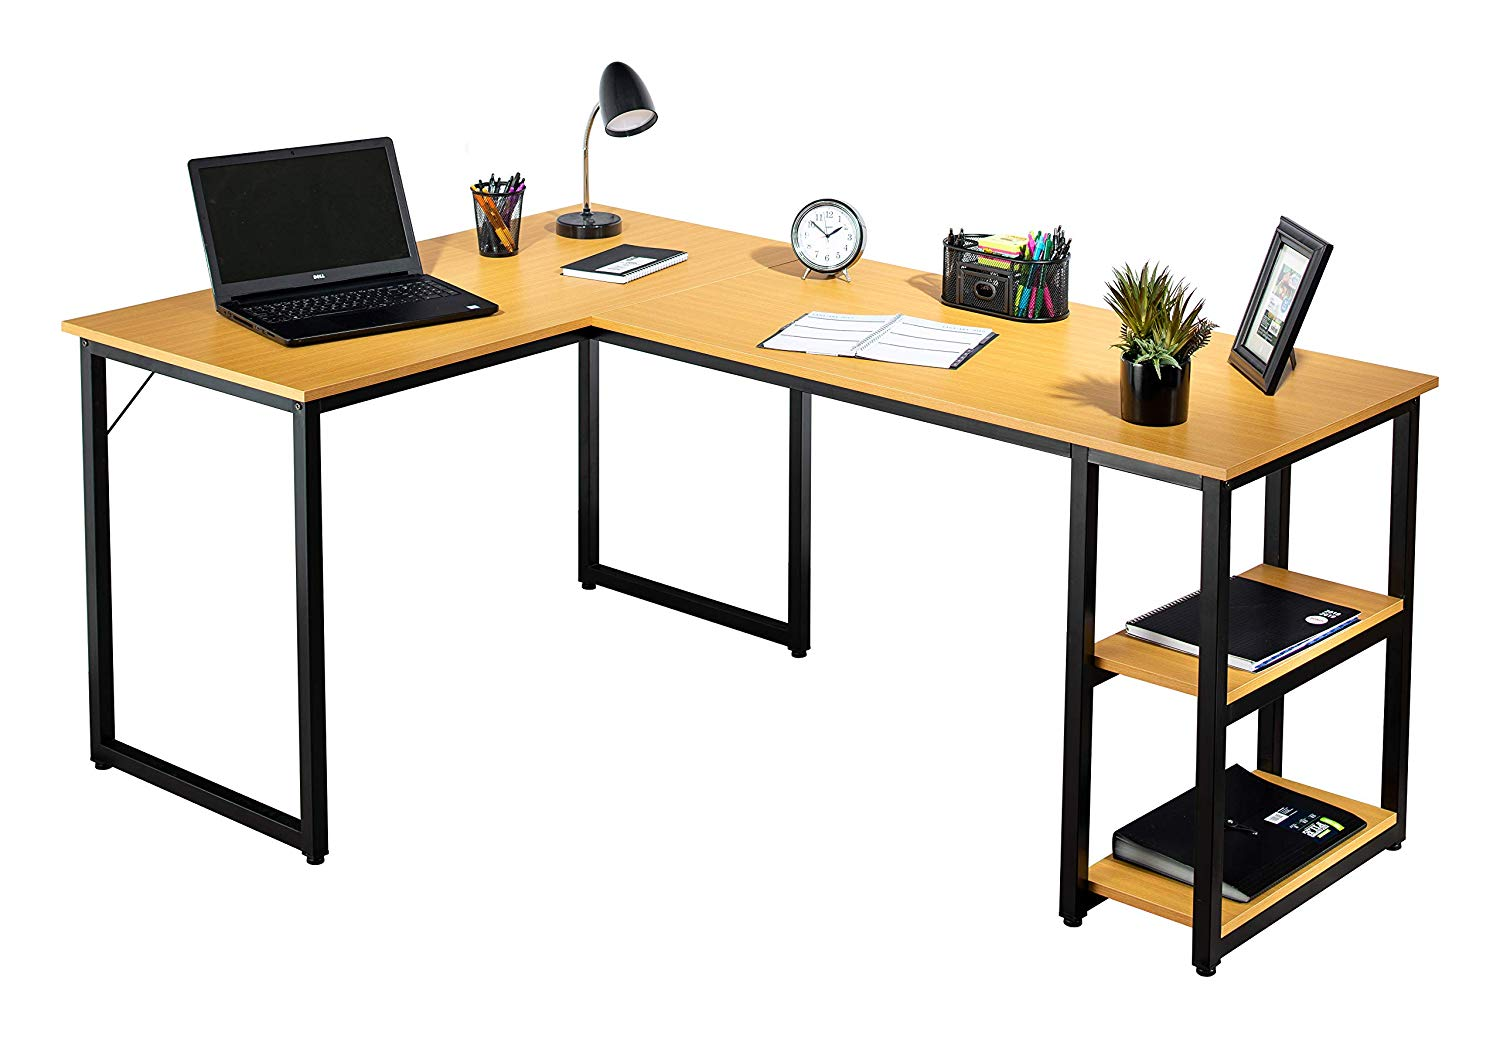 Buy Ameriwood L Shaped Desk With 2 Shelves Black Ebony Ash In Cheap Price On Alibaba Com